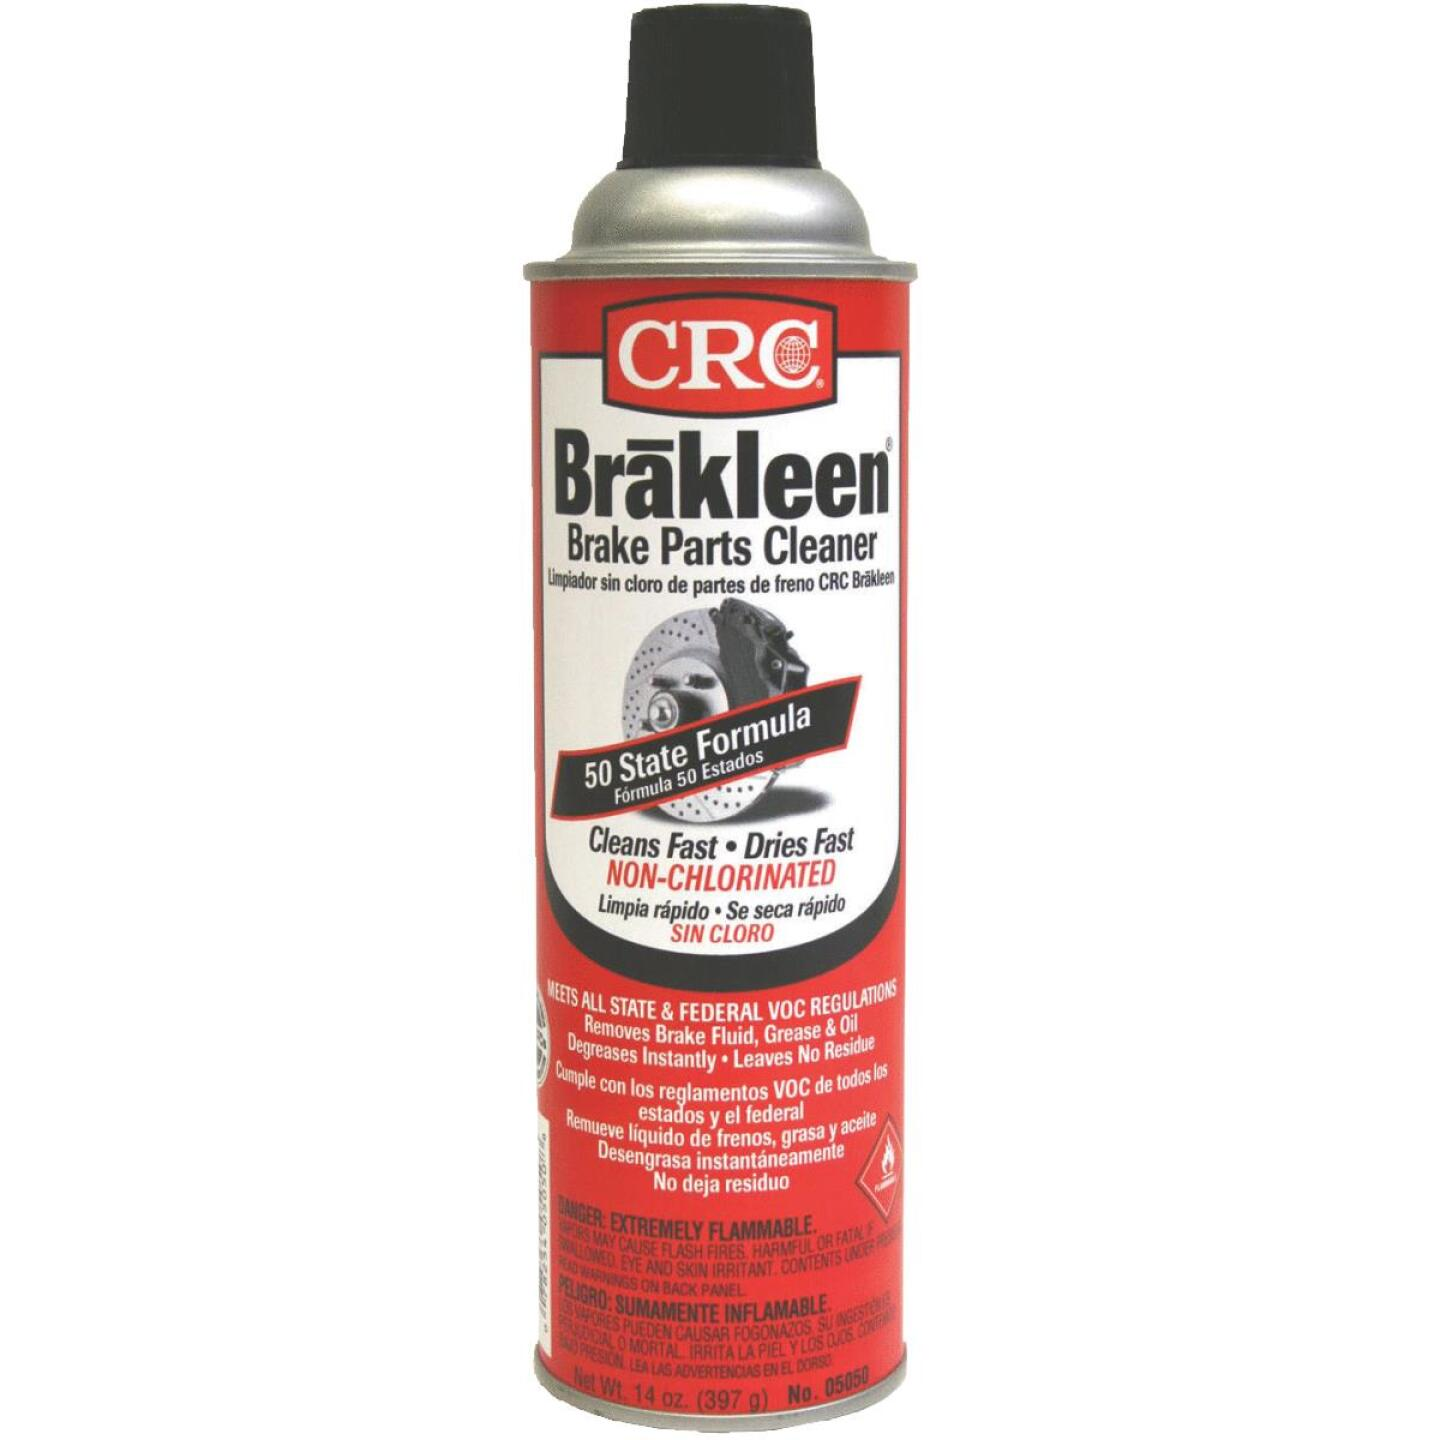 CRC Brakleen Nonchlorinated Aerosol 14 Oz. Brake Cleaner Image 1